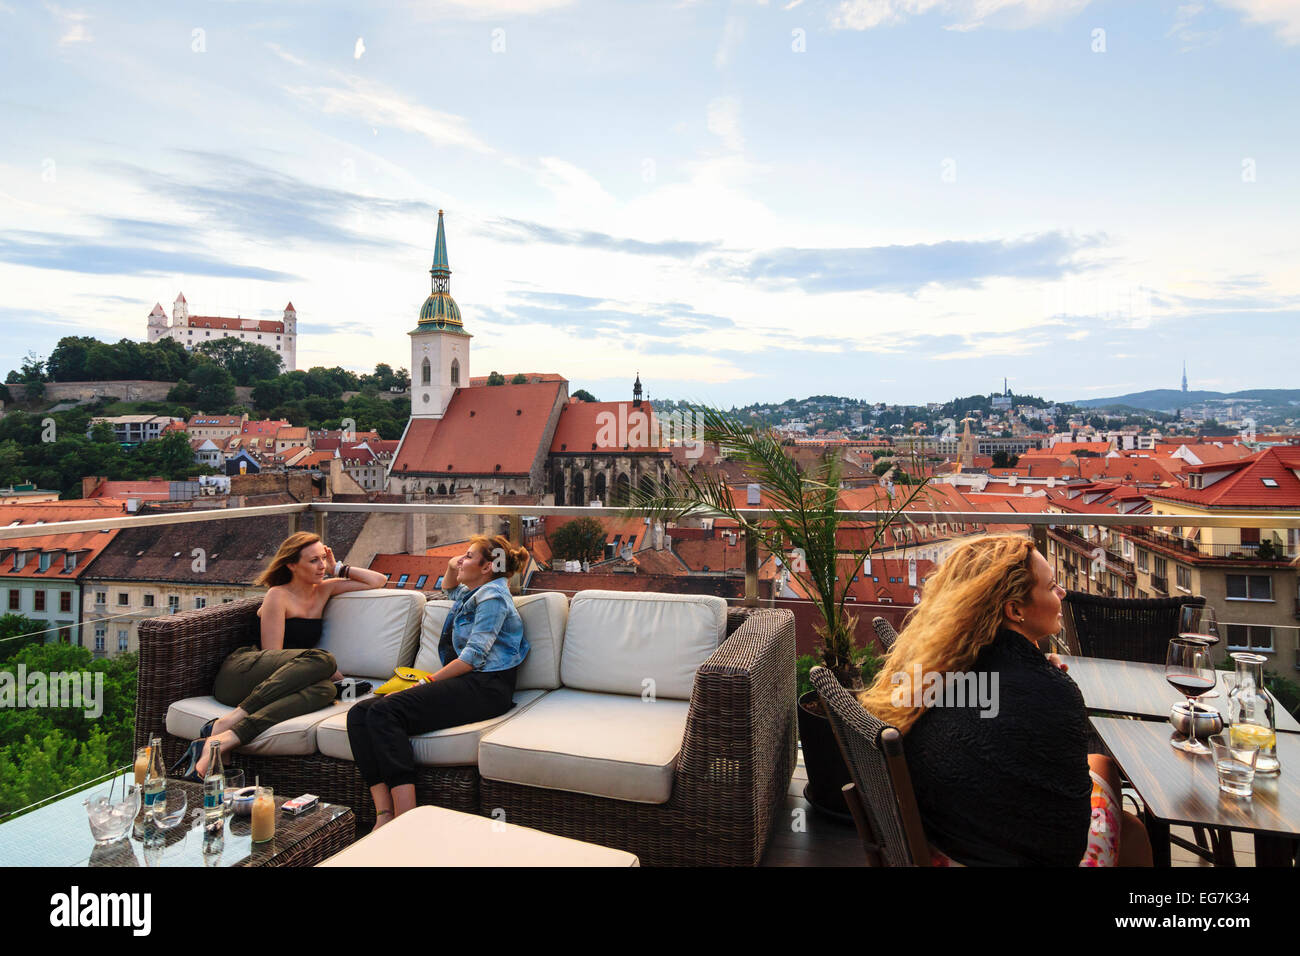 Women at panoramic Sky bar terrace overlooking old town, cathedral and castle in Bratislava, Slovakia - Stock Image